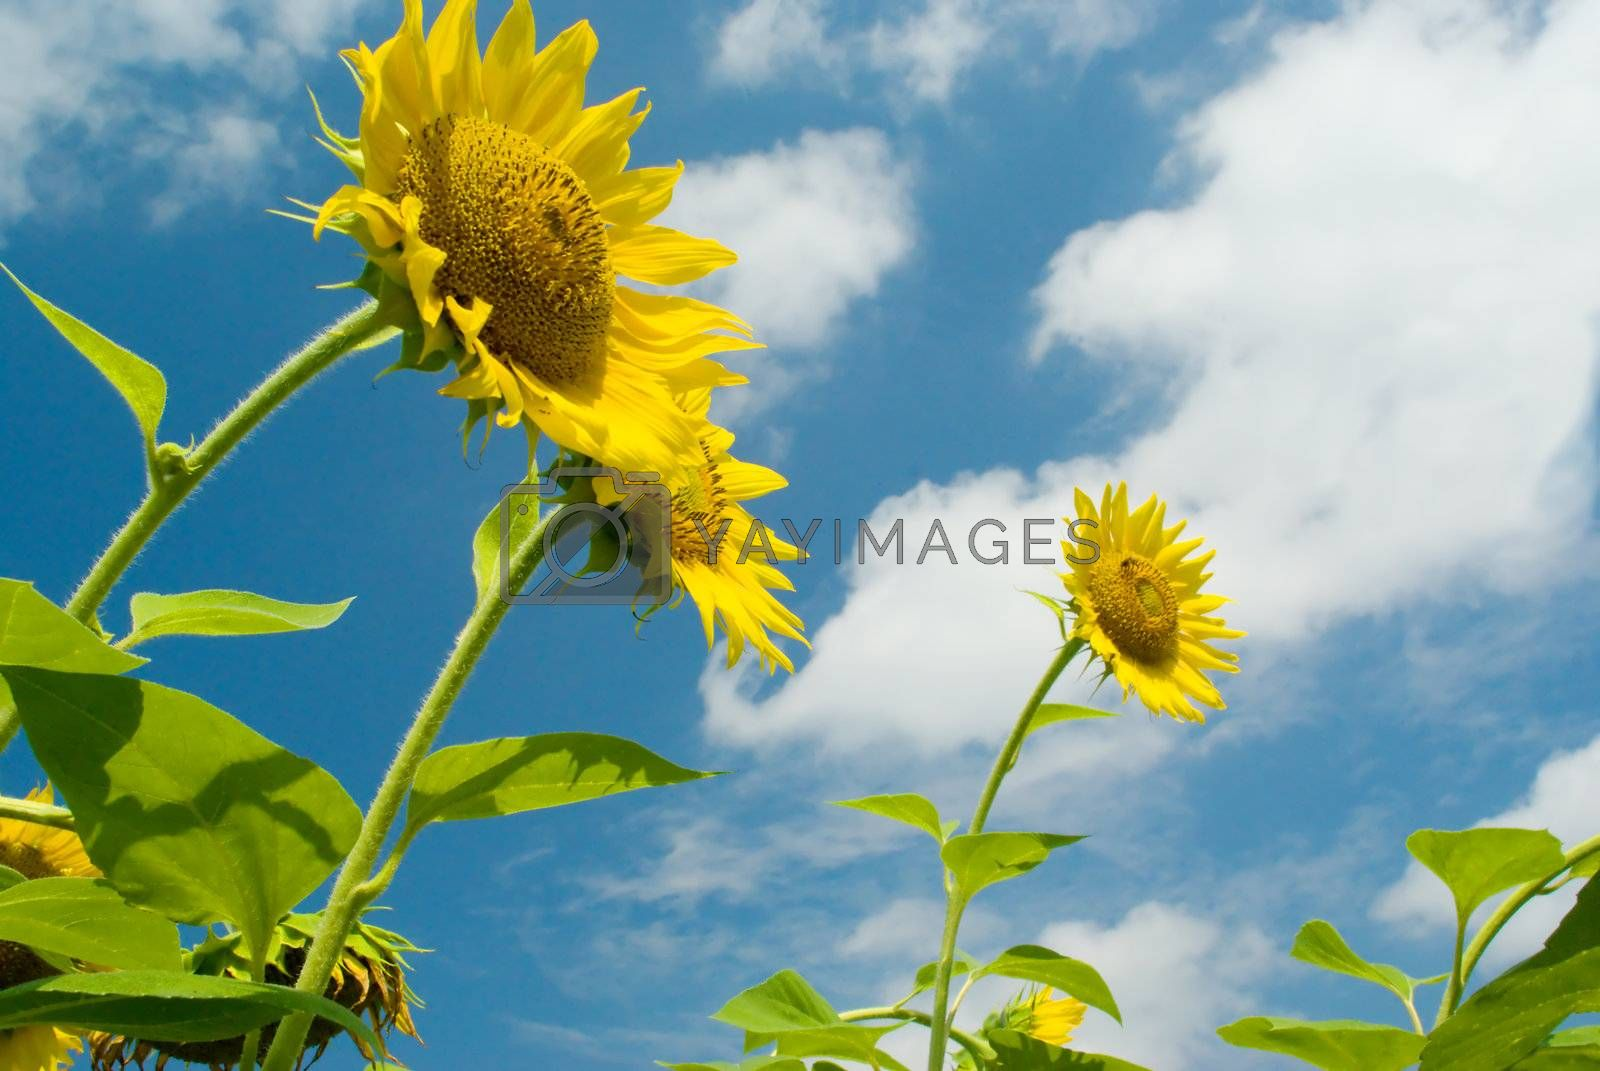 Royalty free image of Three sunflowers against the sky with clouds by BIG_TAU